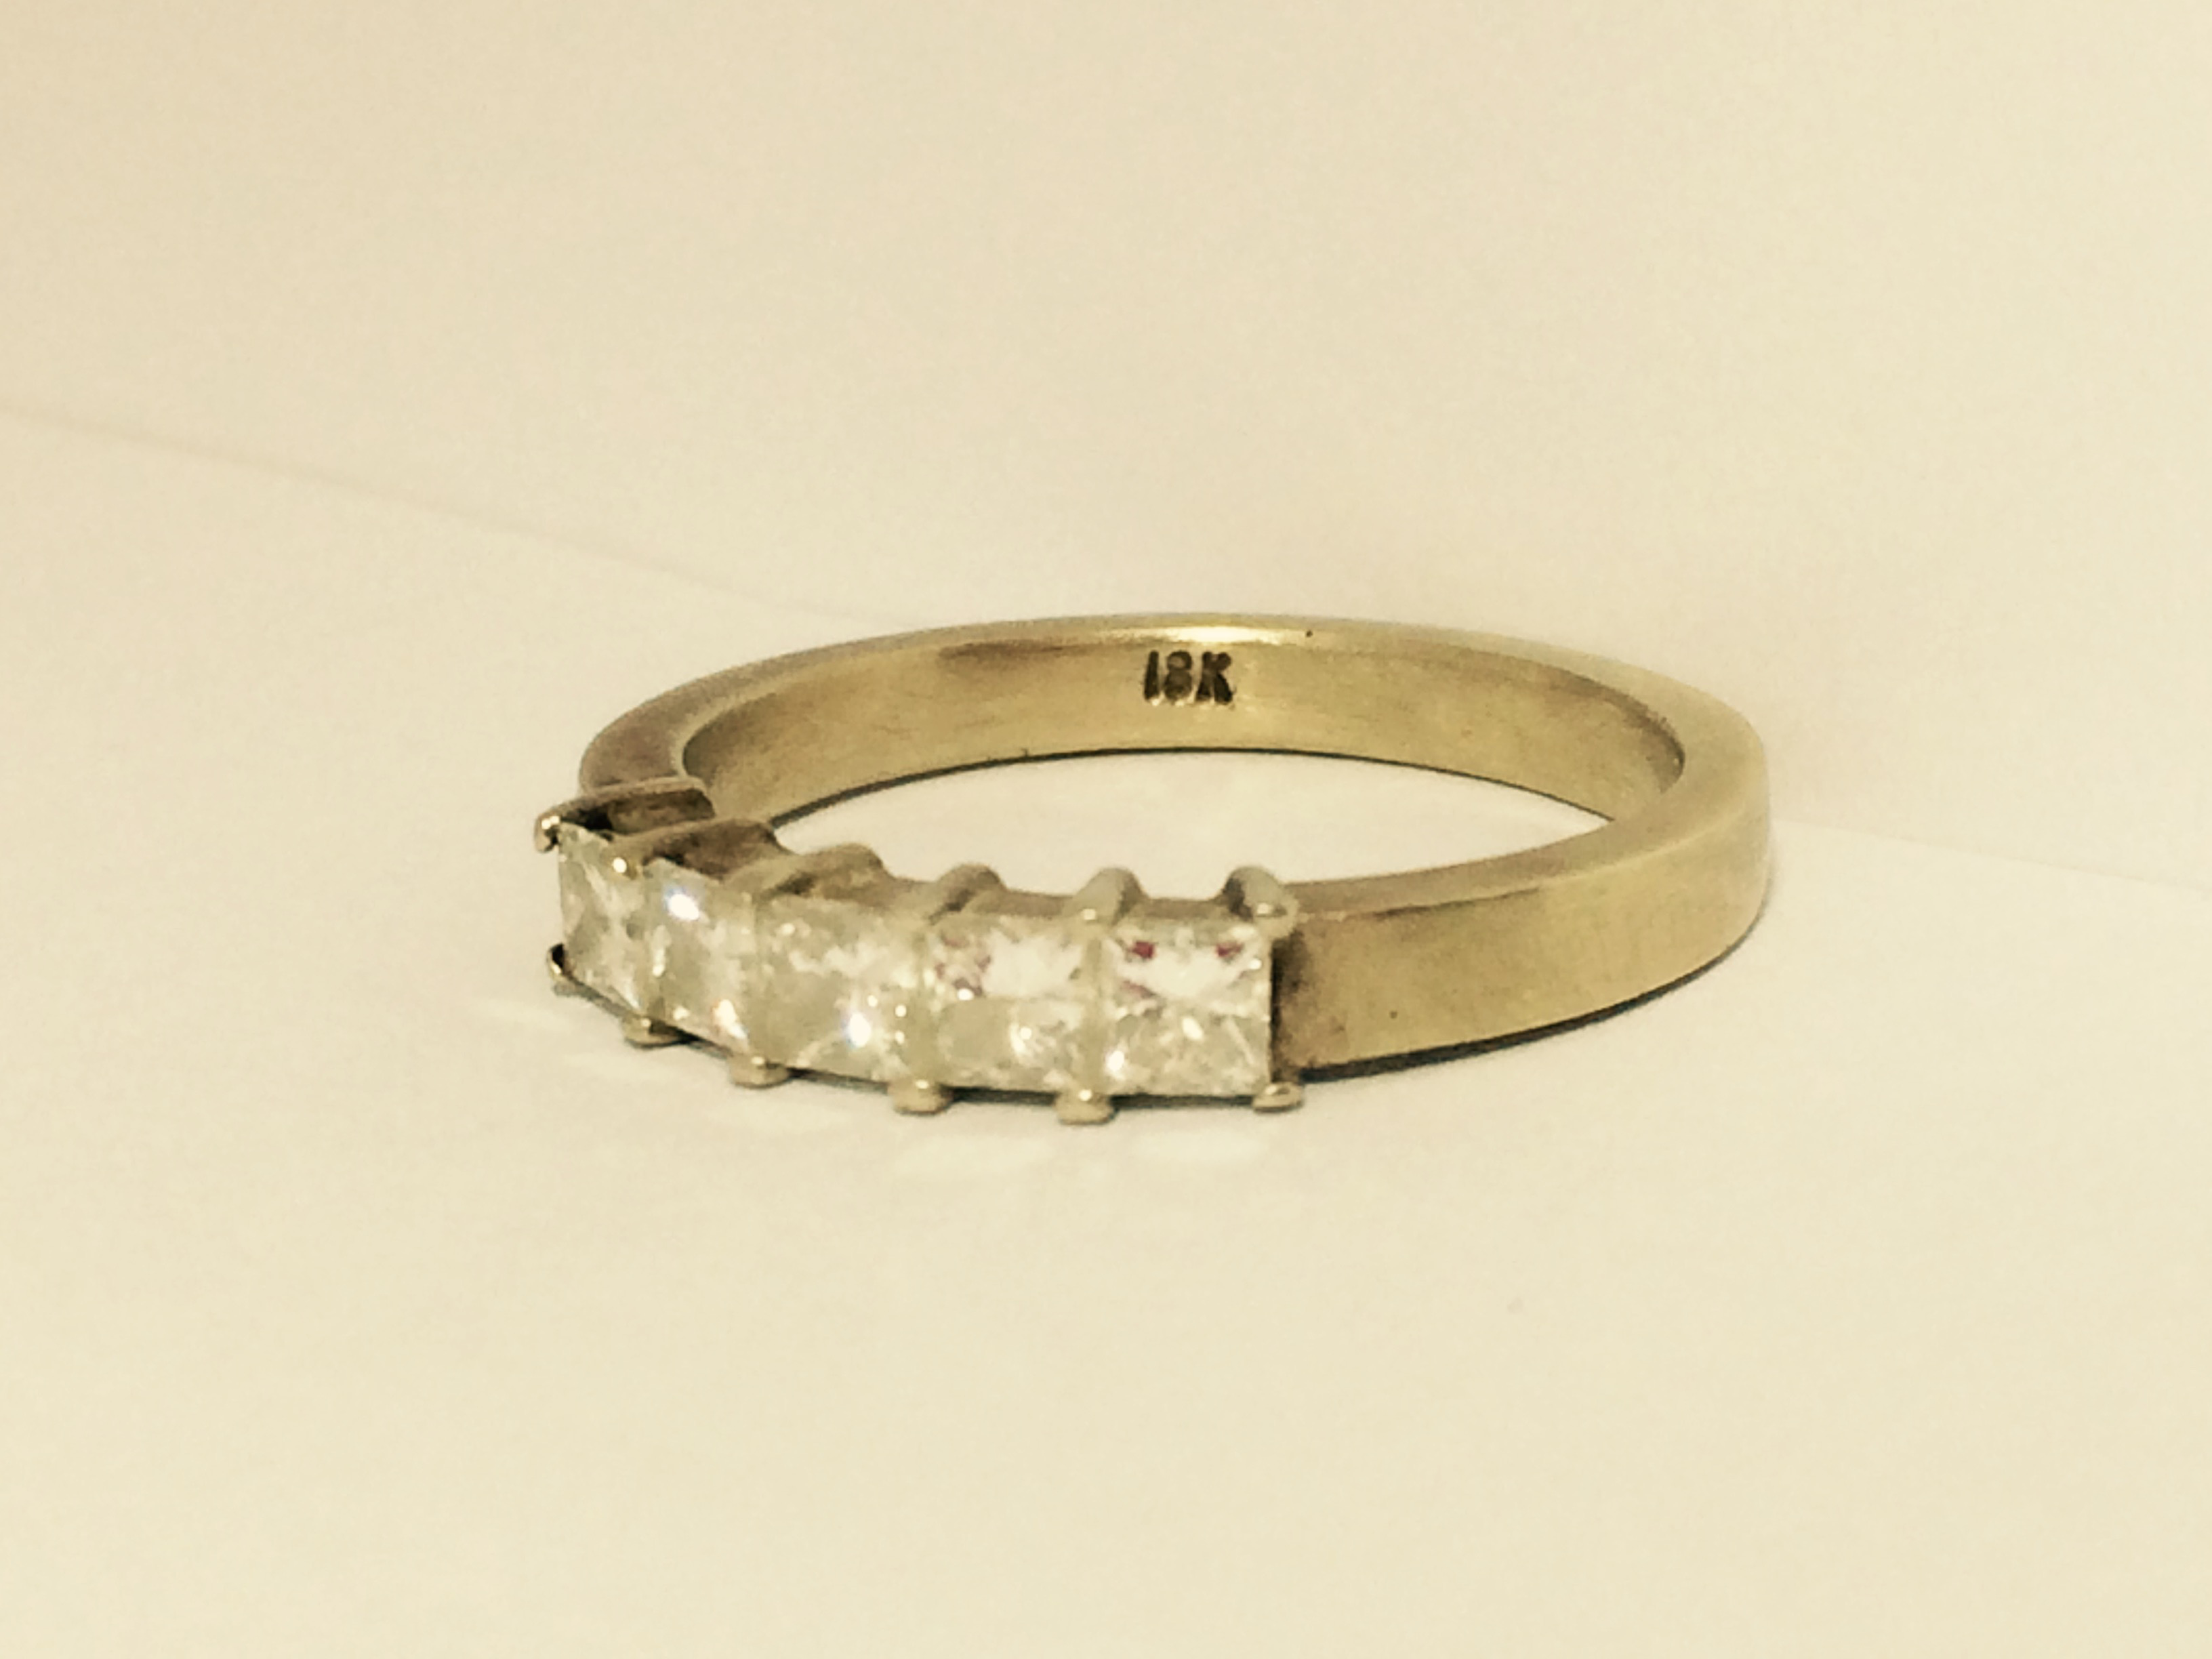 14K Gold Ring with 5 Square Diamonds